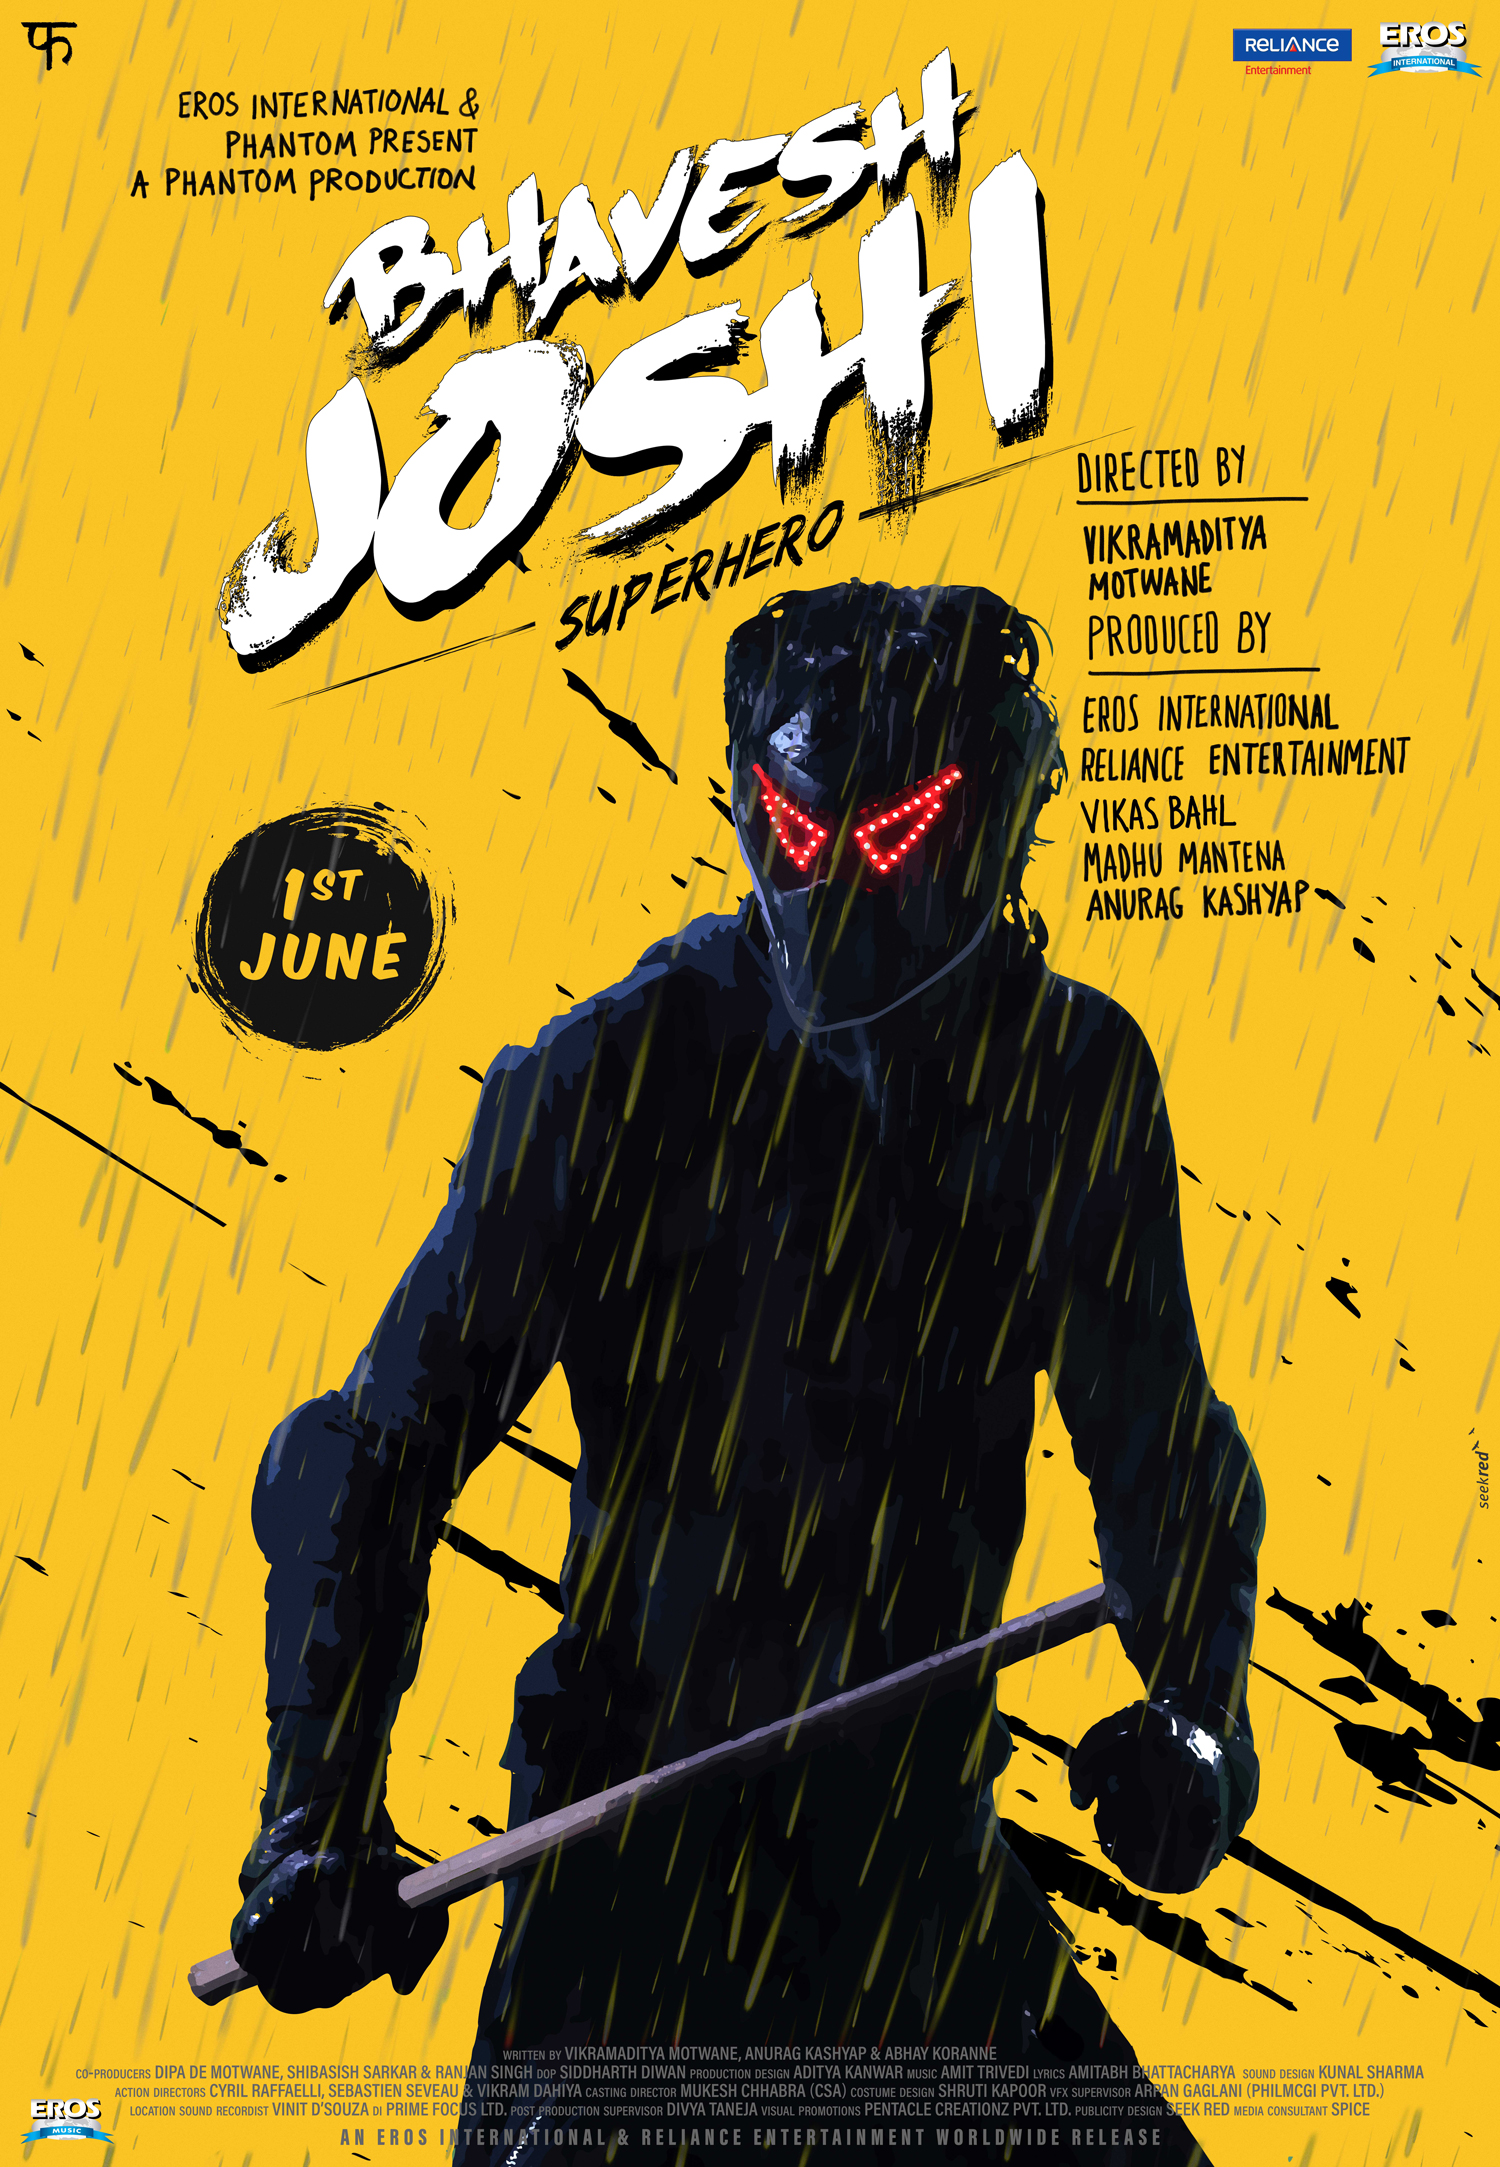 Bhavesh Joshi Superhero - Yellow poster #SeekRed